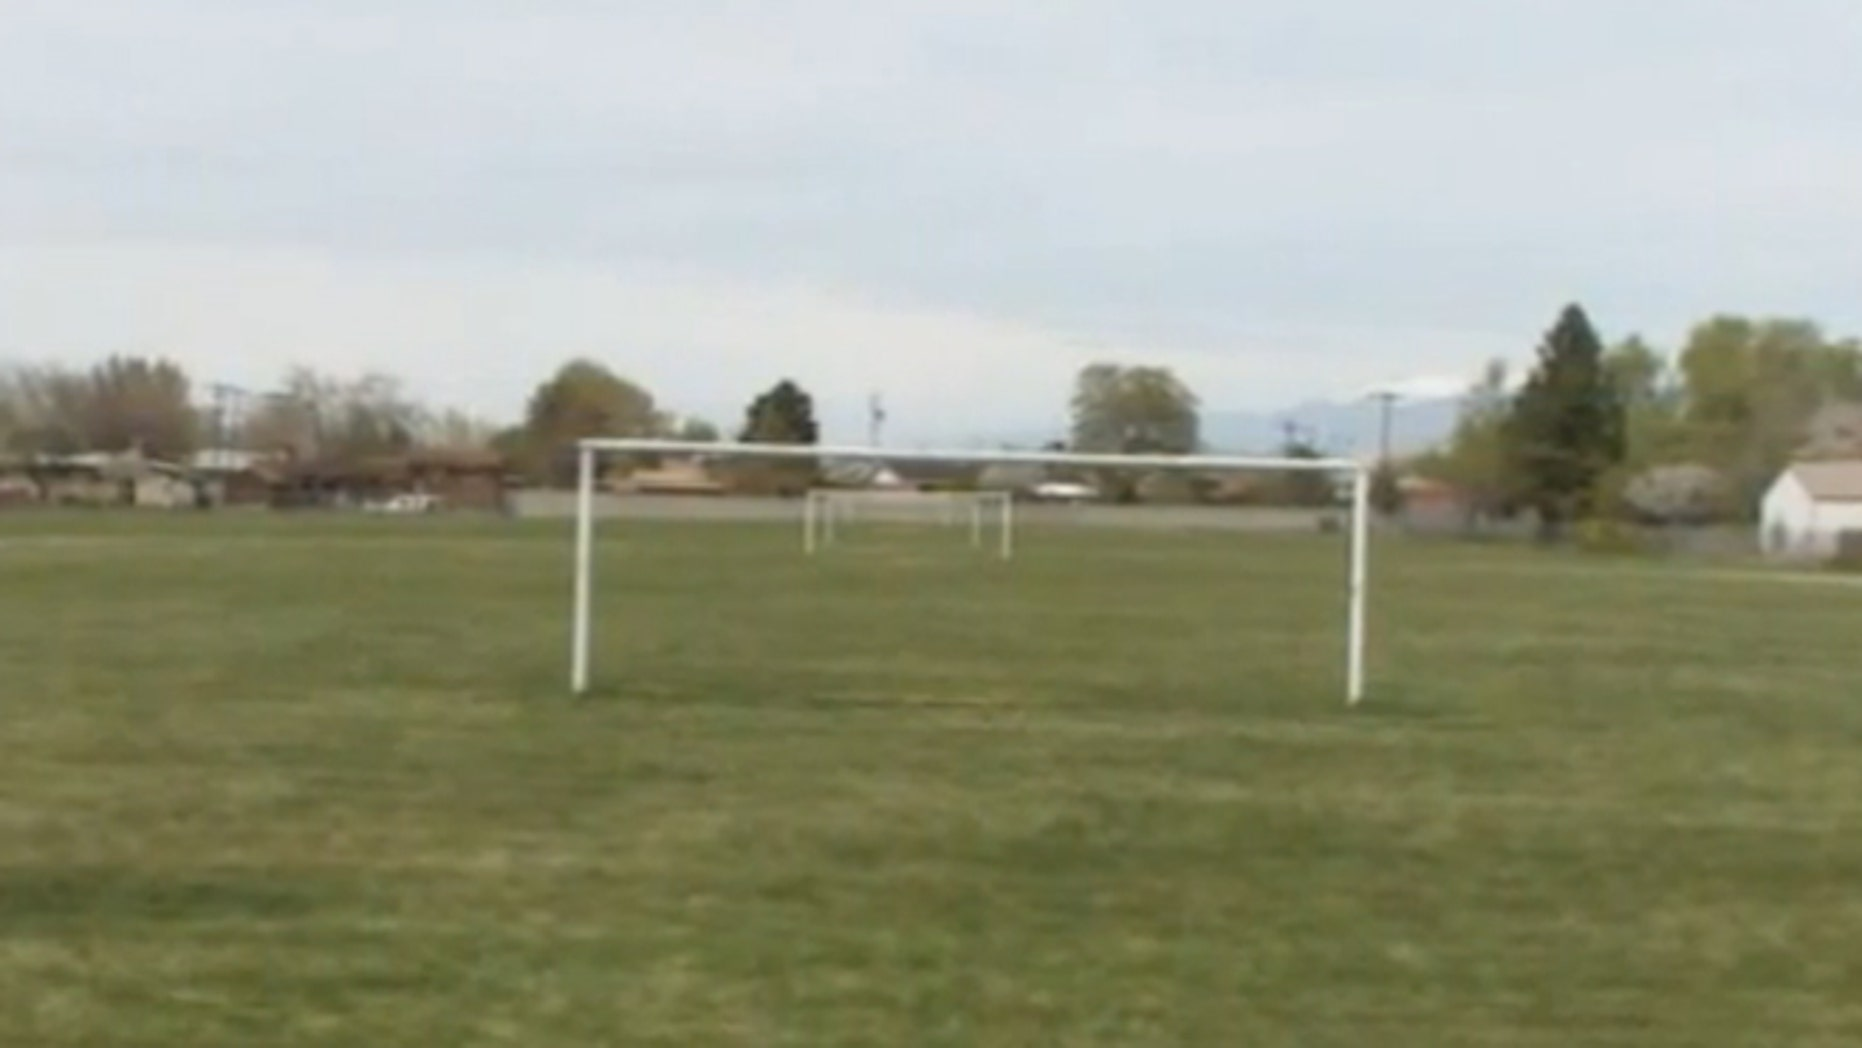 The 46-year-old man was injured Saturday morning while officiating a game being played in the fields behind Eisenhower Jr. High, just outside Salt Lake City.